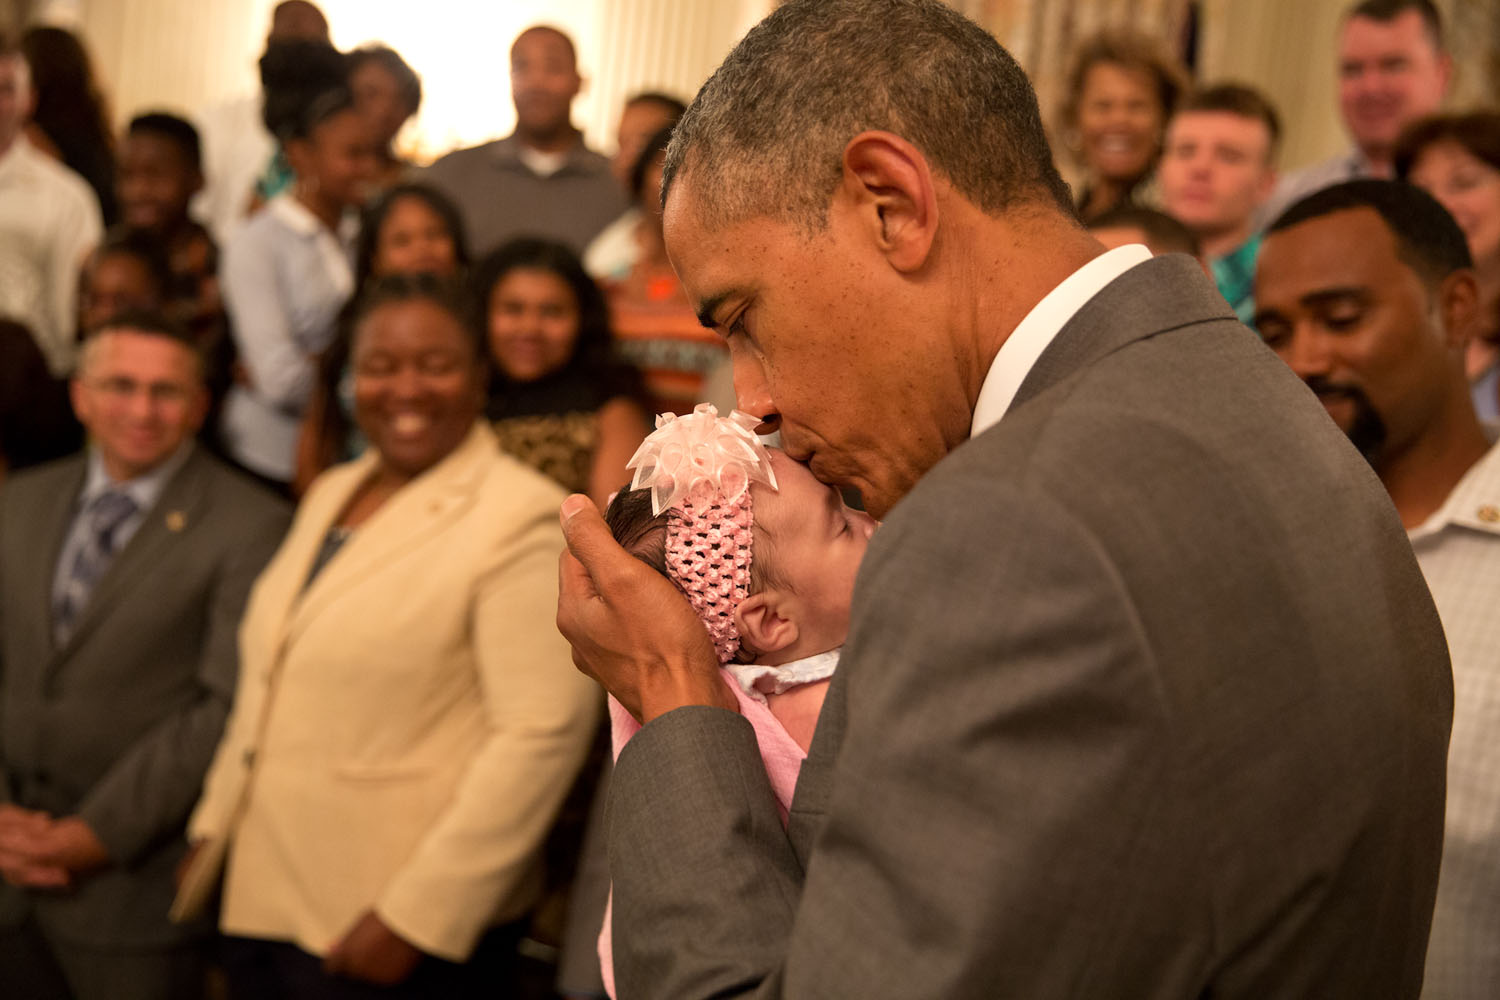 The President kisses a baby girl as he and the Vice president greet wounded warriors and their families during their tour in the East Room of the White House. Official White House photo by Pete Souza.